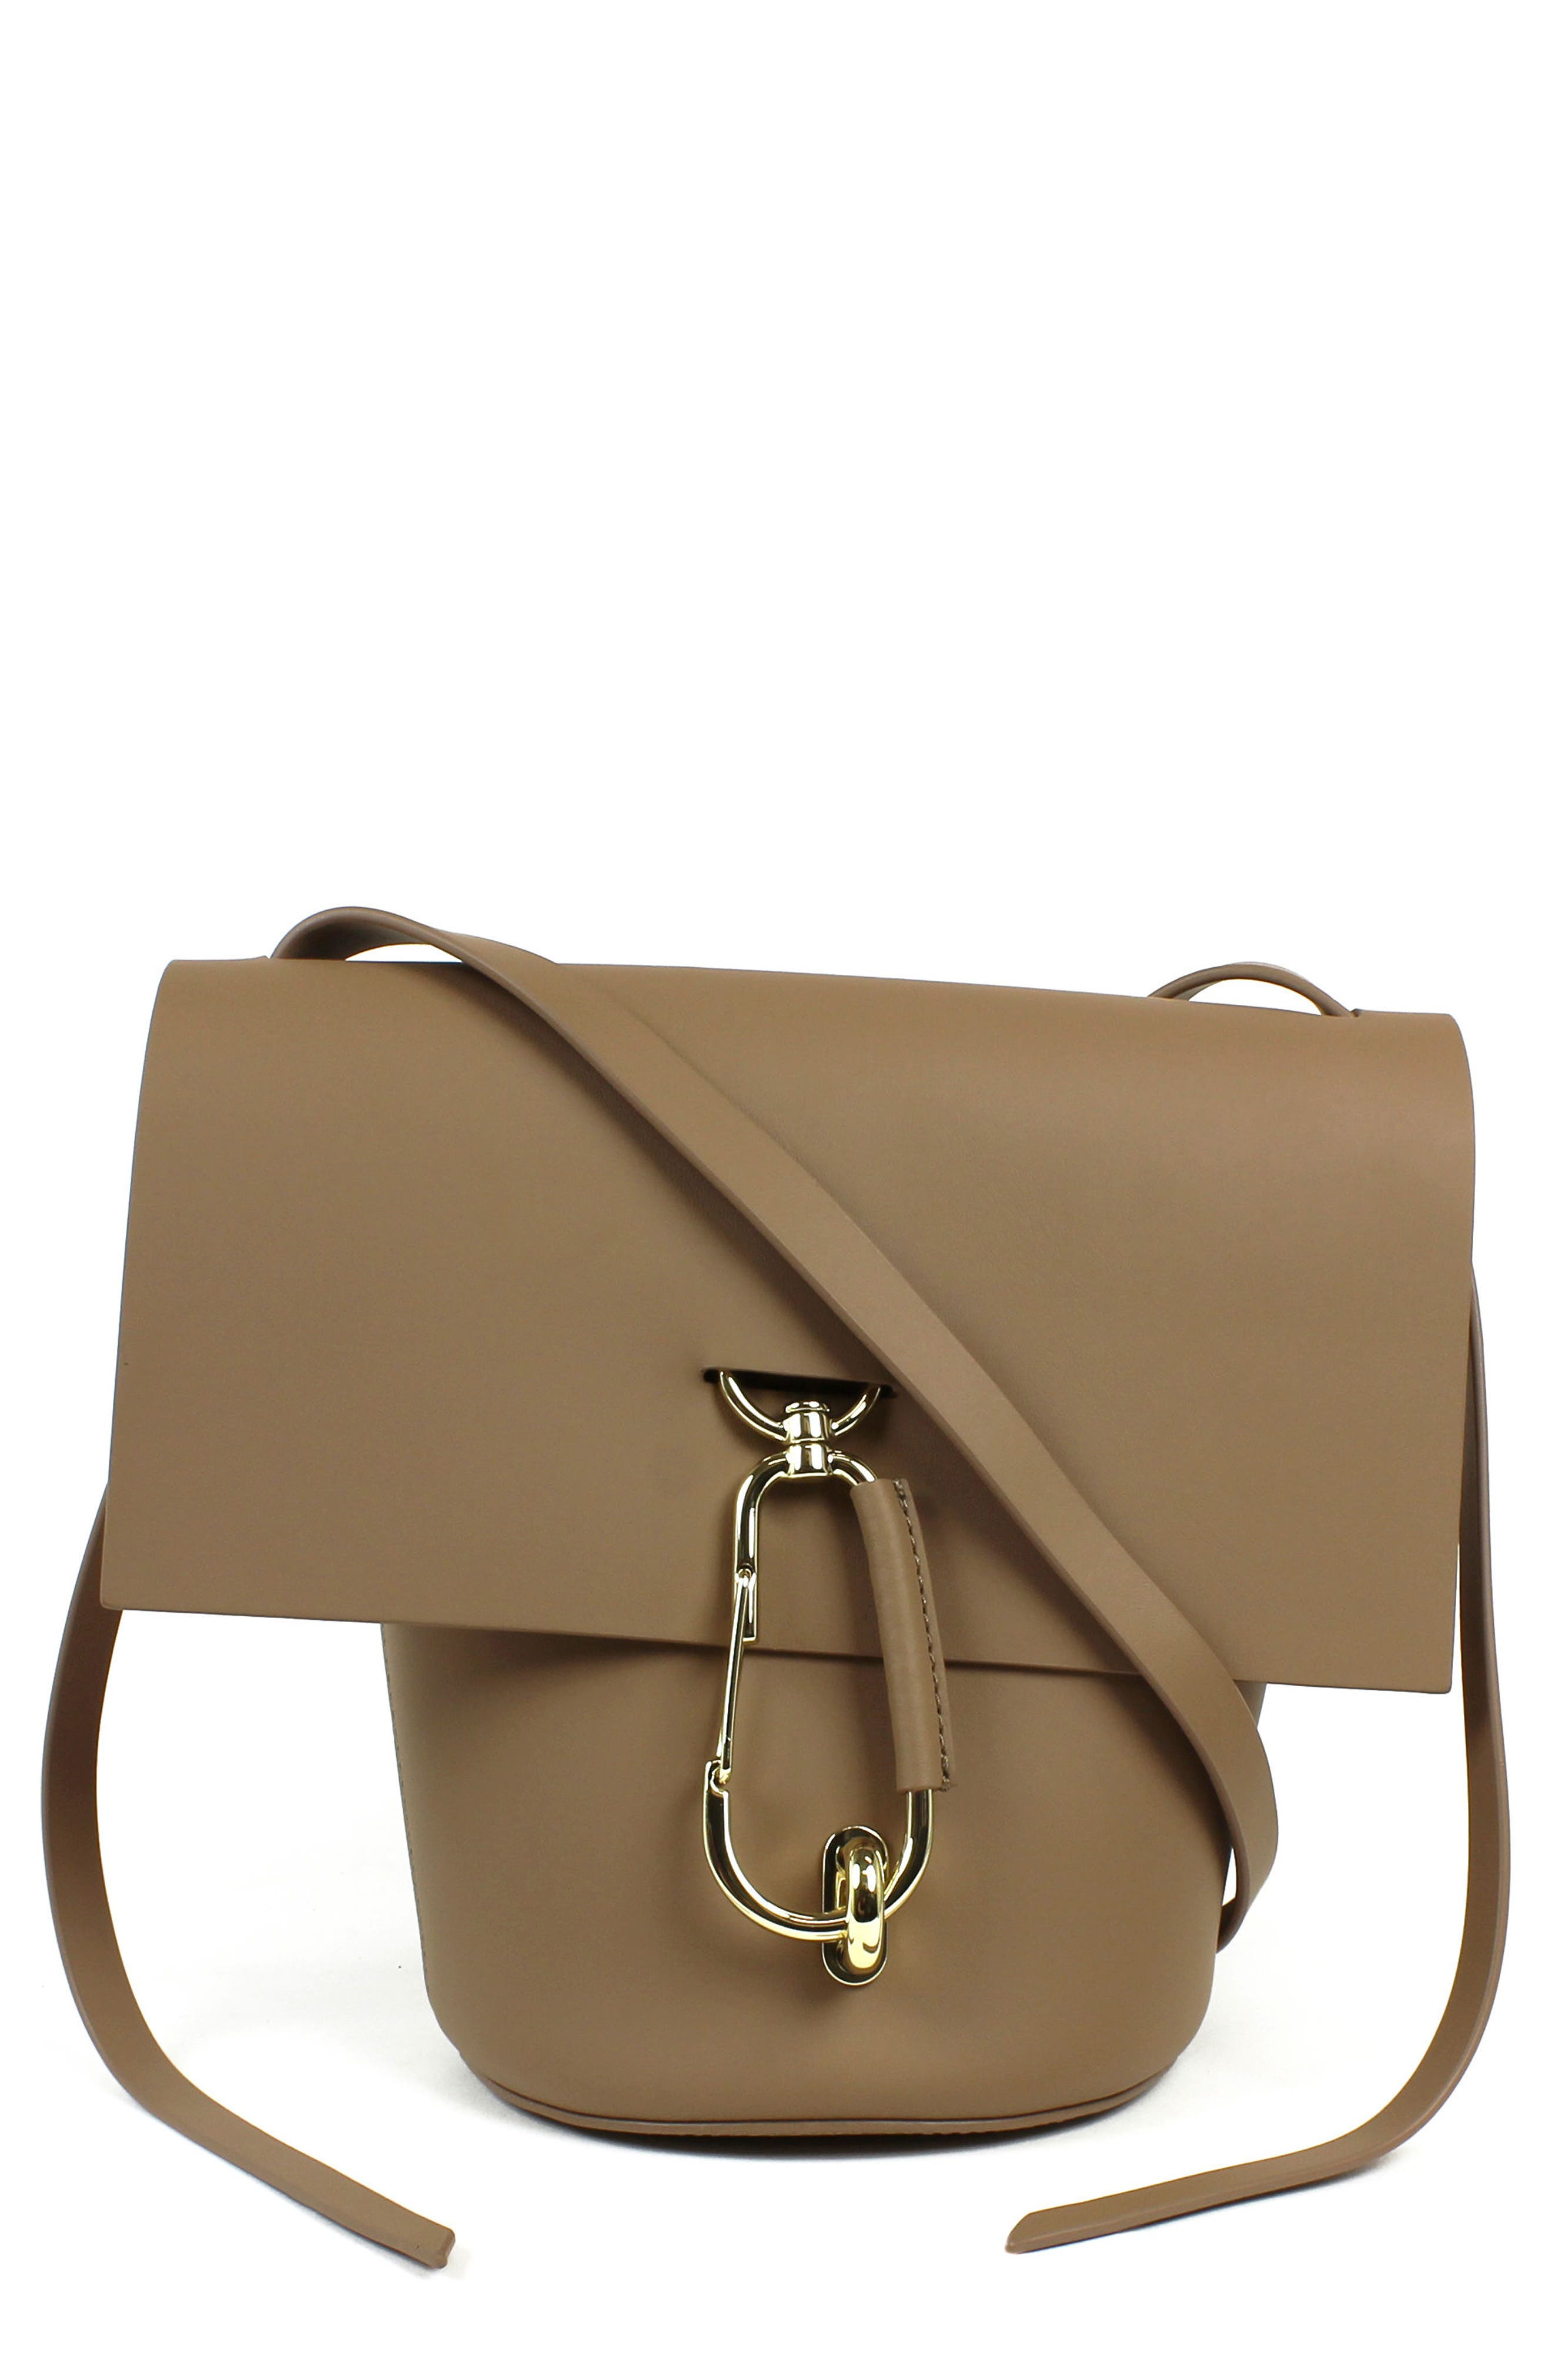 Belay Leather Bucket Bag,                         Main,                         color, Seagull